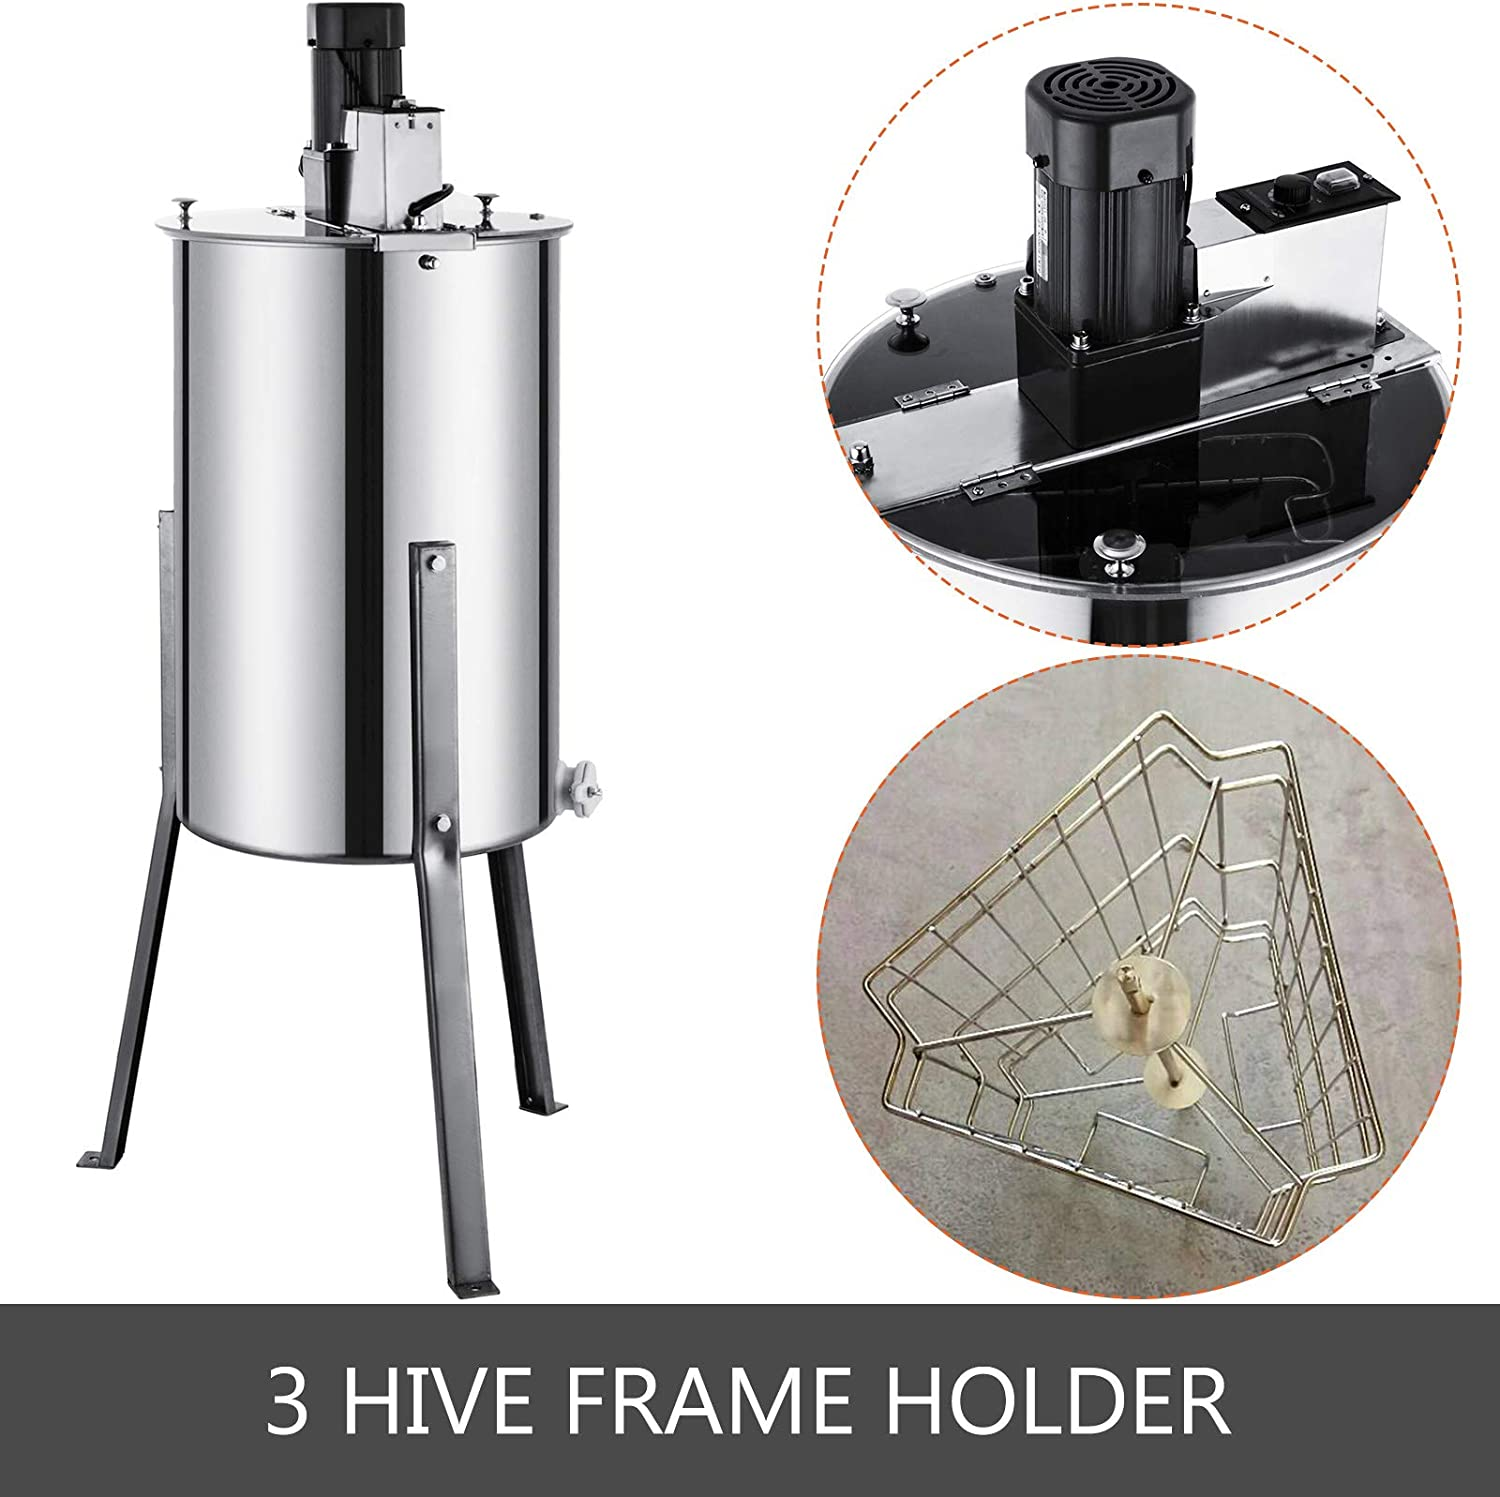 VEVOR 3 Frame Electric Honey Extractor Separator Stainless Steel Bee Extractor Stainless Steel Honeycomb Spinner Crank Beekeeping Extraction Apiary Centrifuge Equipment